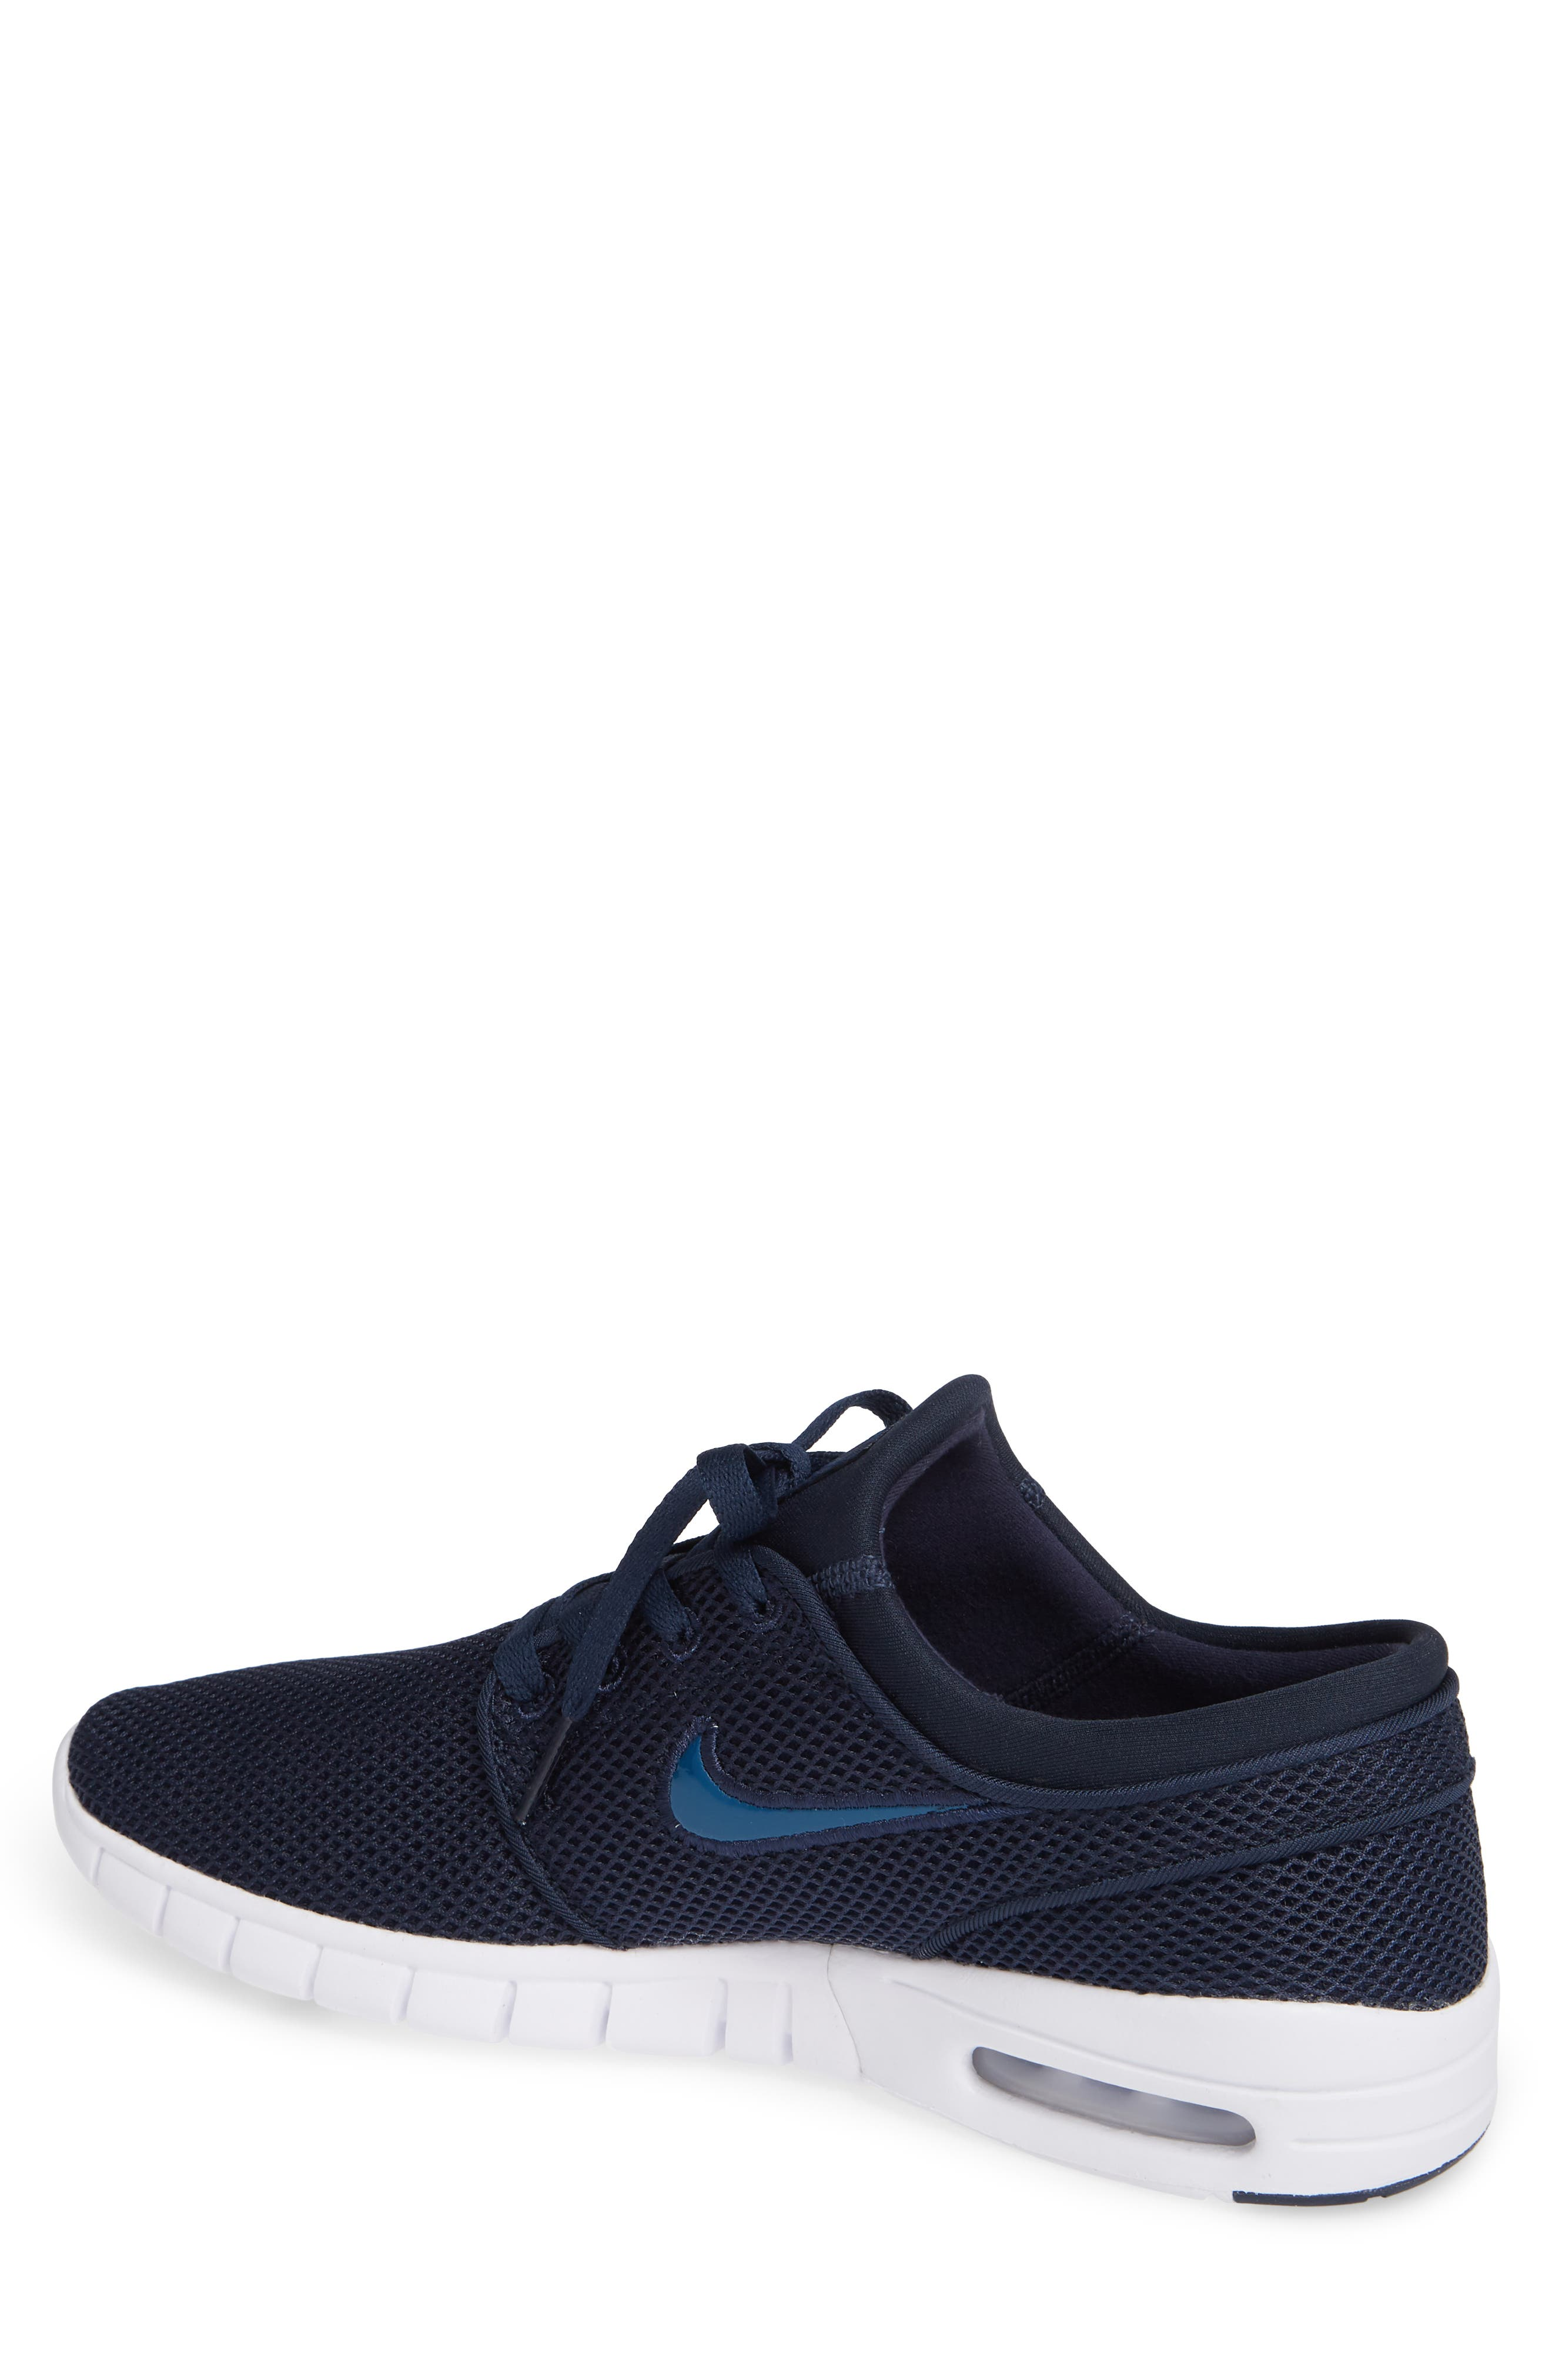 'Stefan Janoski - Max SB' Skate Shoe,                             Alternate thumbnail 2, color,                             407